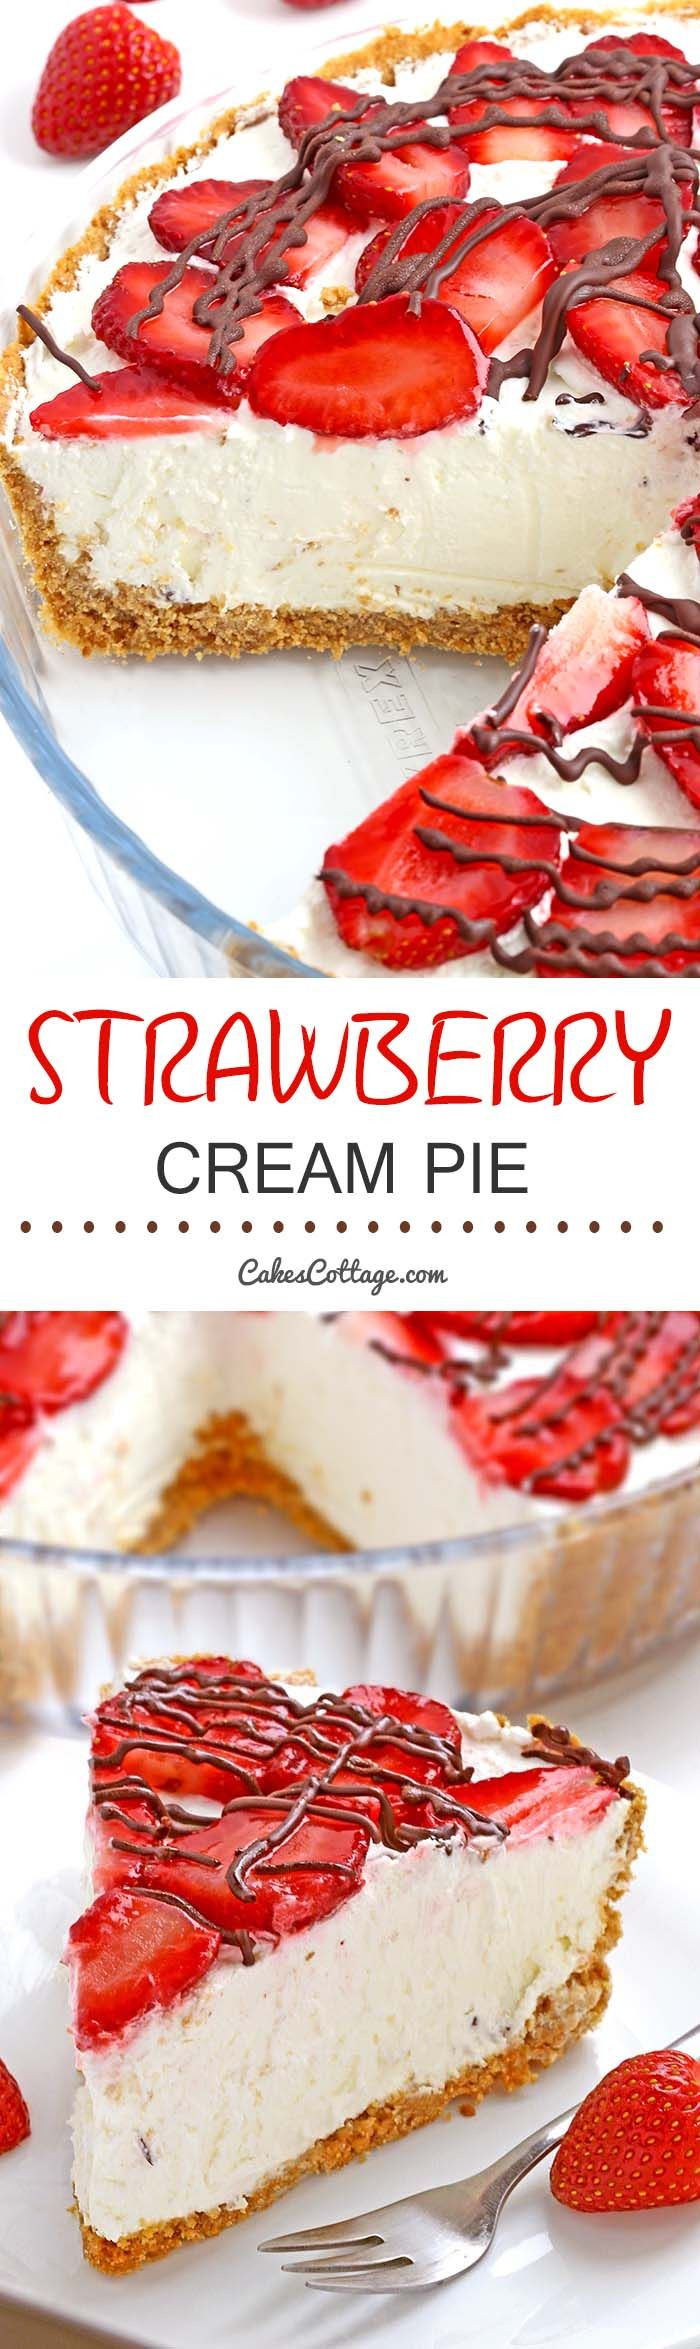 An Easy Strawberries And Cream Pie Made With Graham Crackers Whipped Cream Cream Cheese